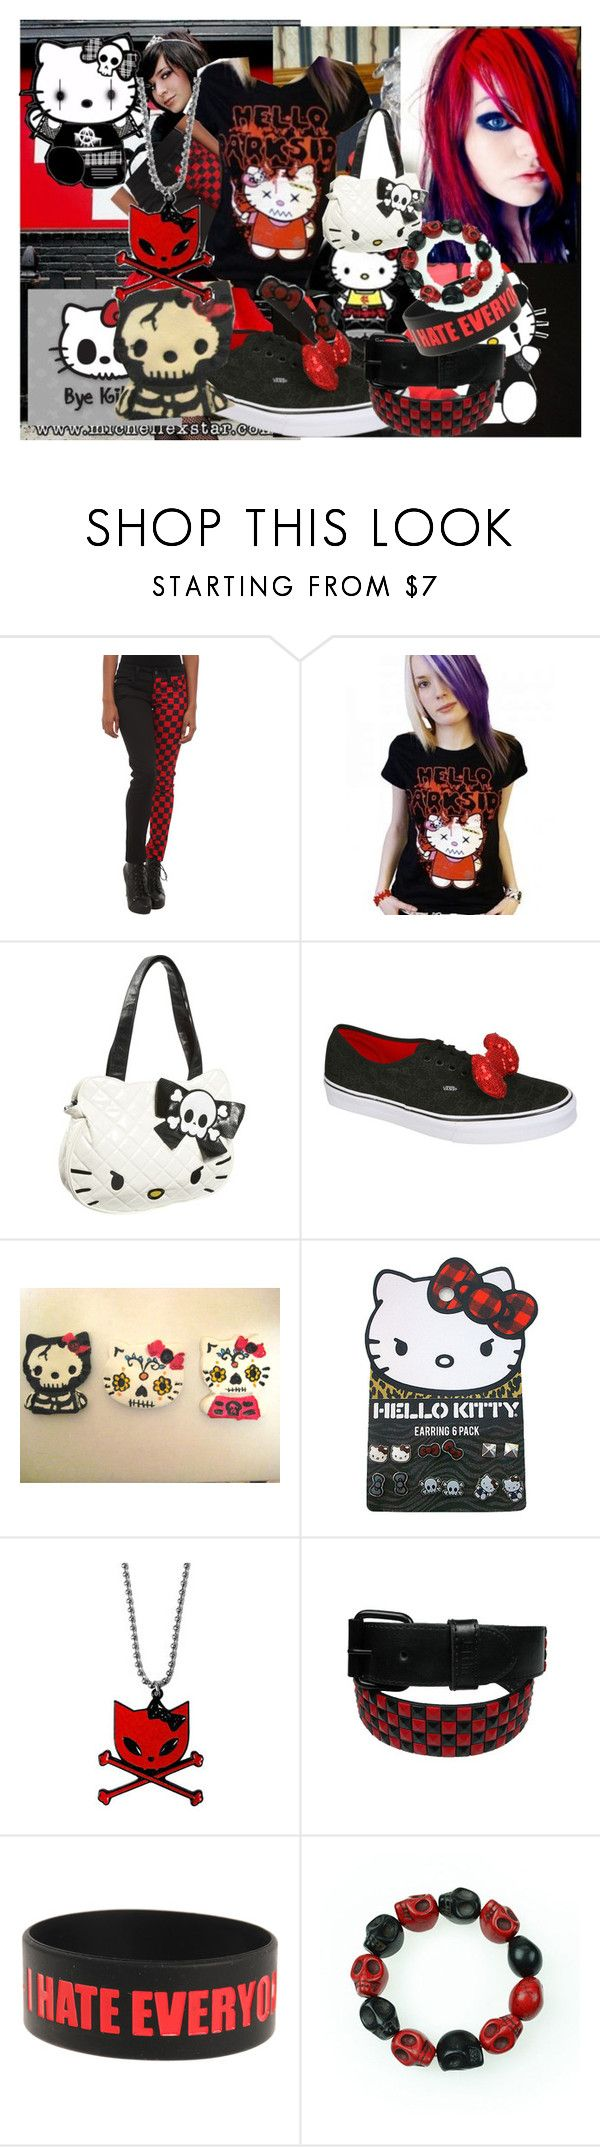 """Bye Bye Darkside kitty and Hello Kitty"" by darkpulse ❤ liked on Polyvore featuring Hot Topic, Hello Kitty, Vans, Poizen Industries, emo and hellokitty"